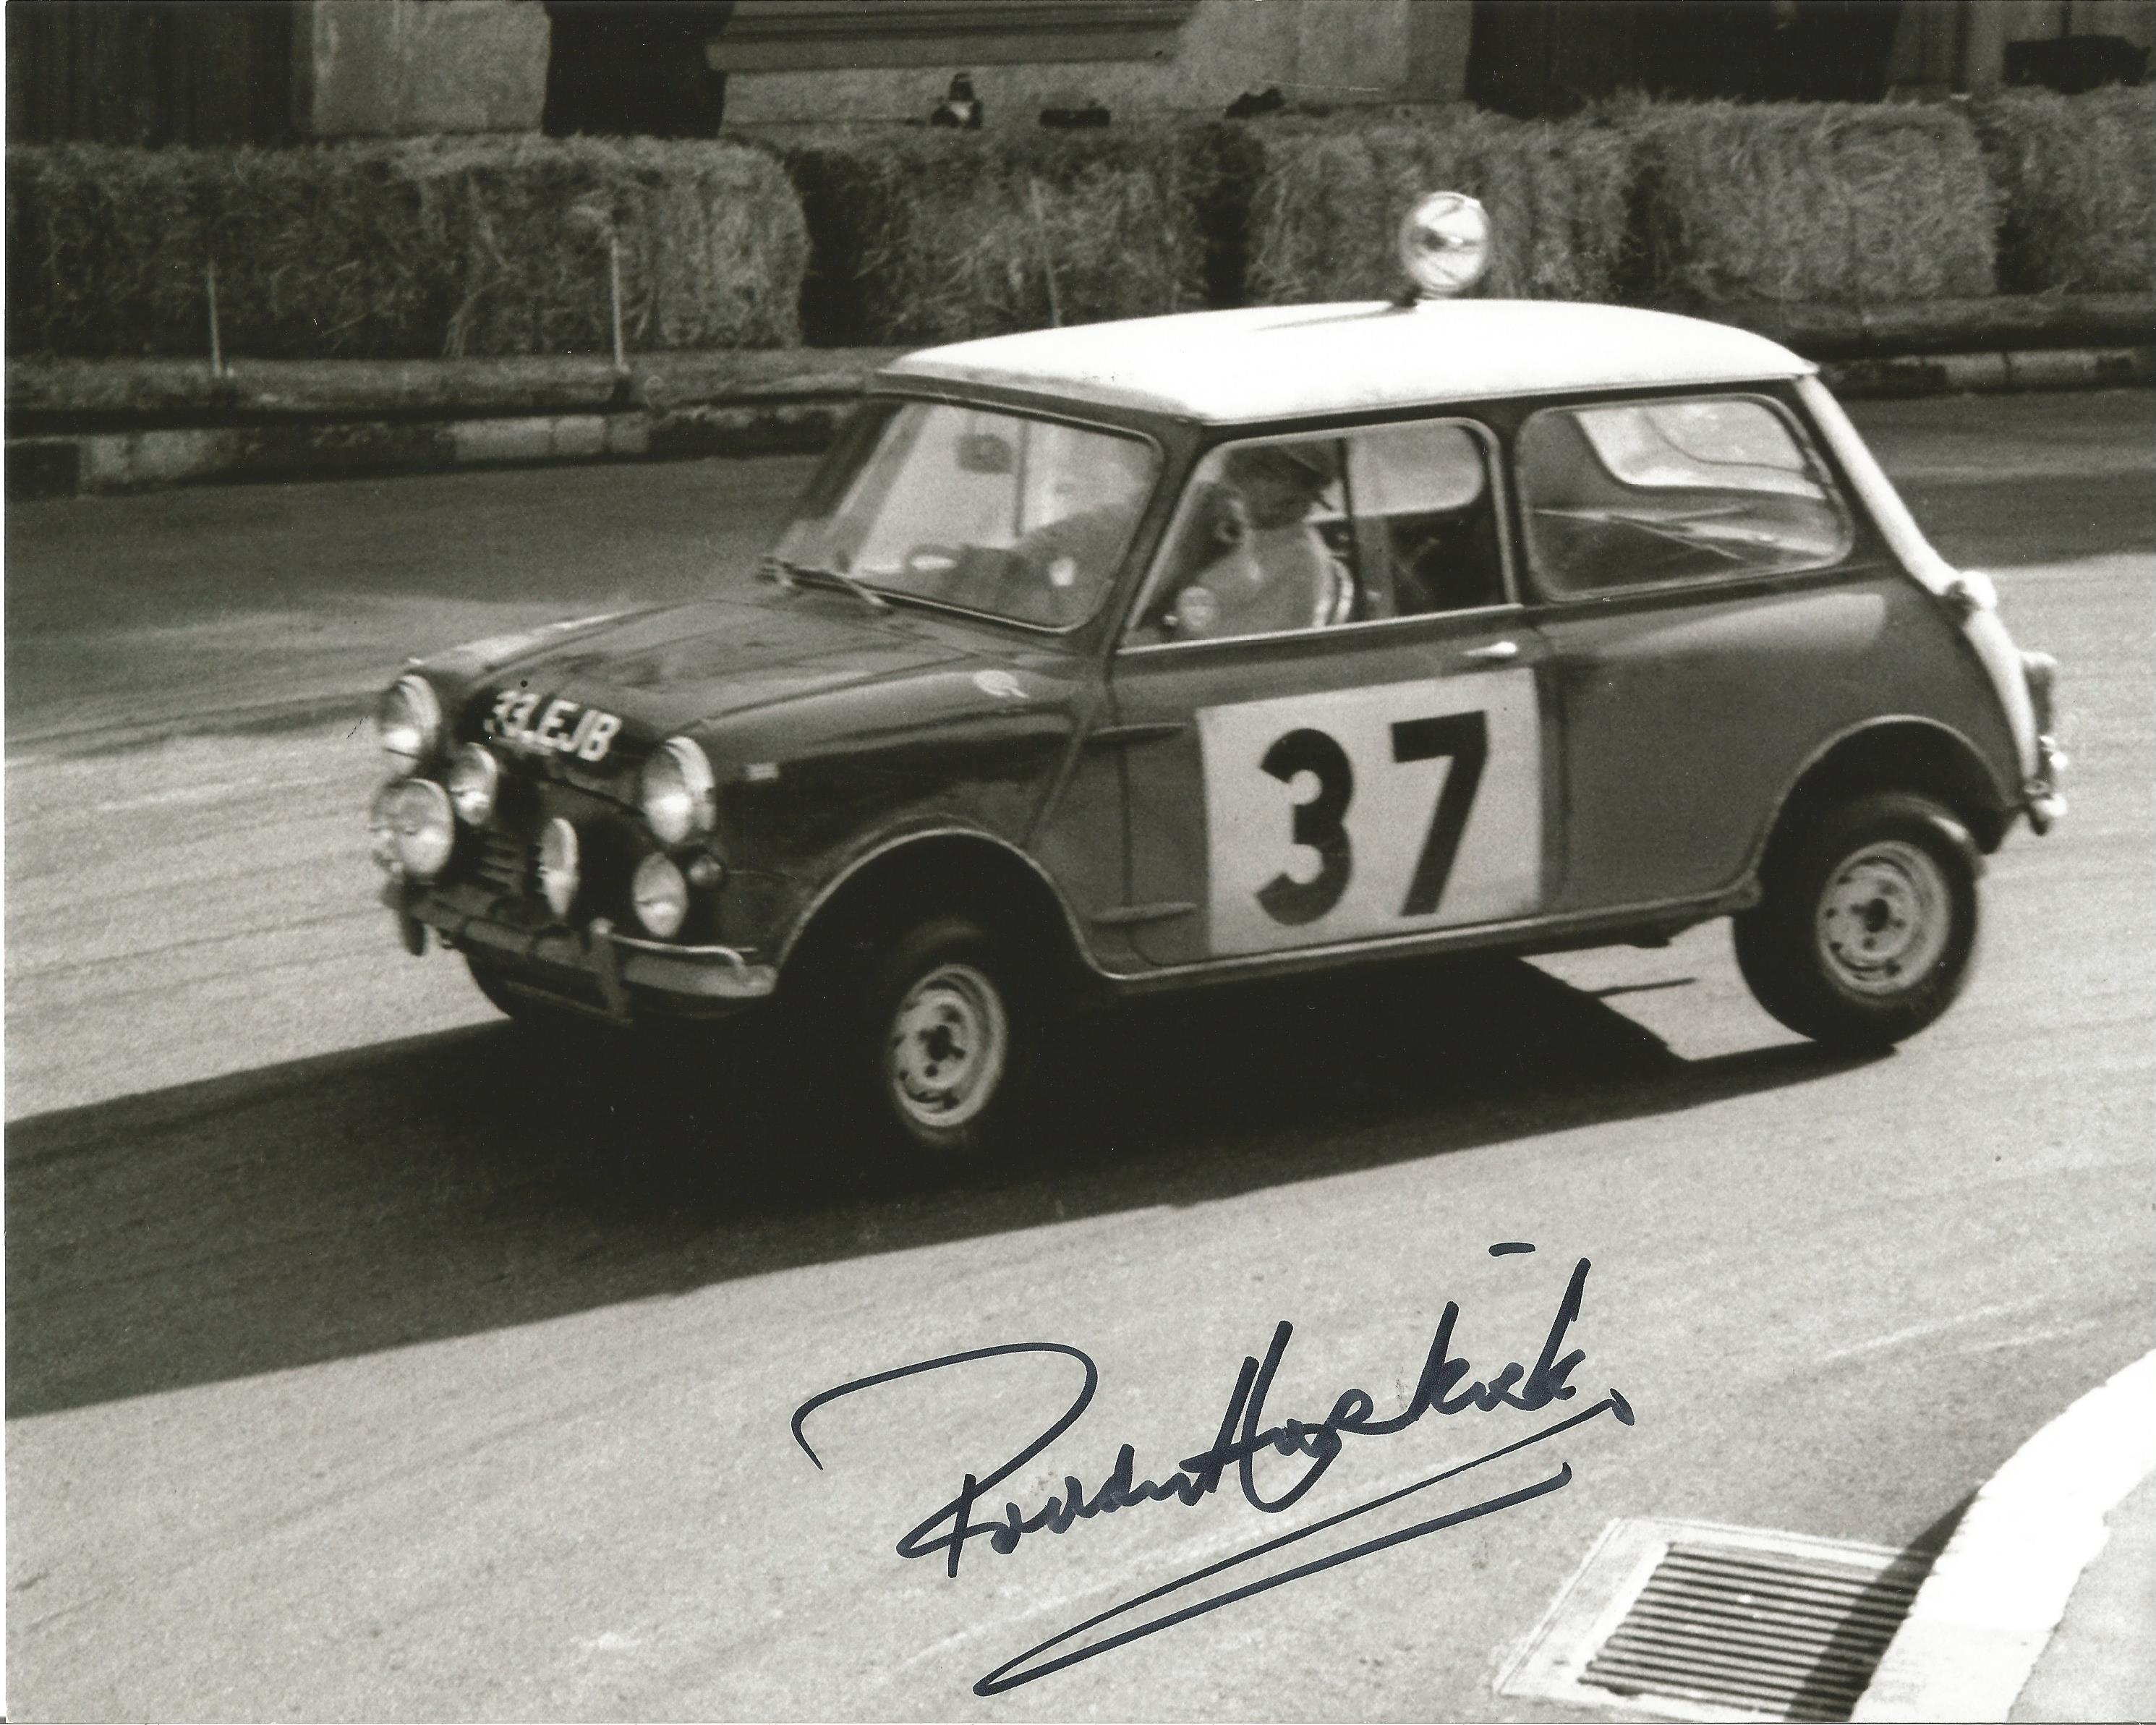 Paddy Hopkirk signed 10x8 black and white photo. Patrick Barron Hopkirk MBE born 14 April 1933 is